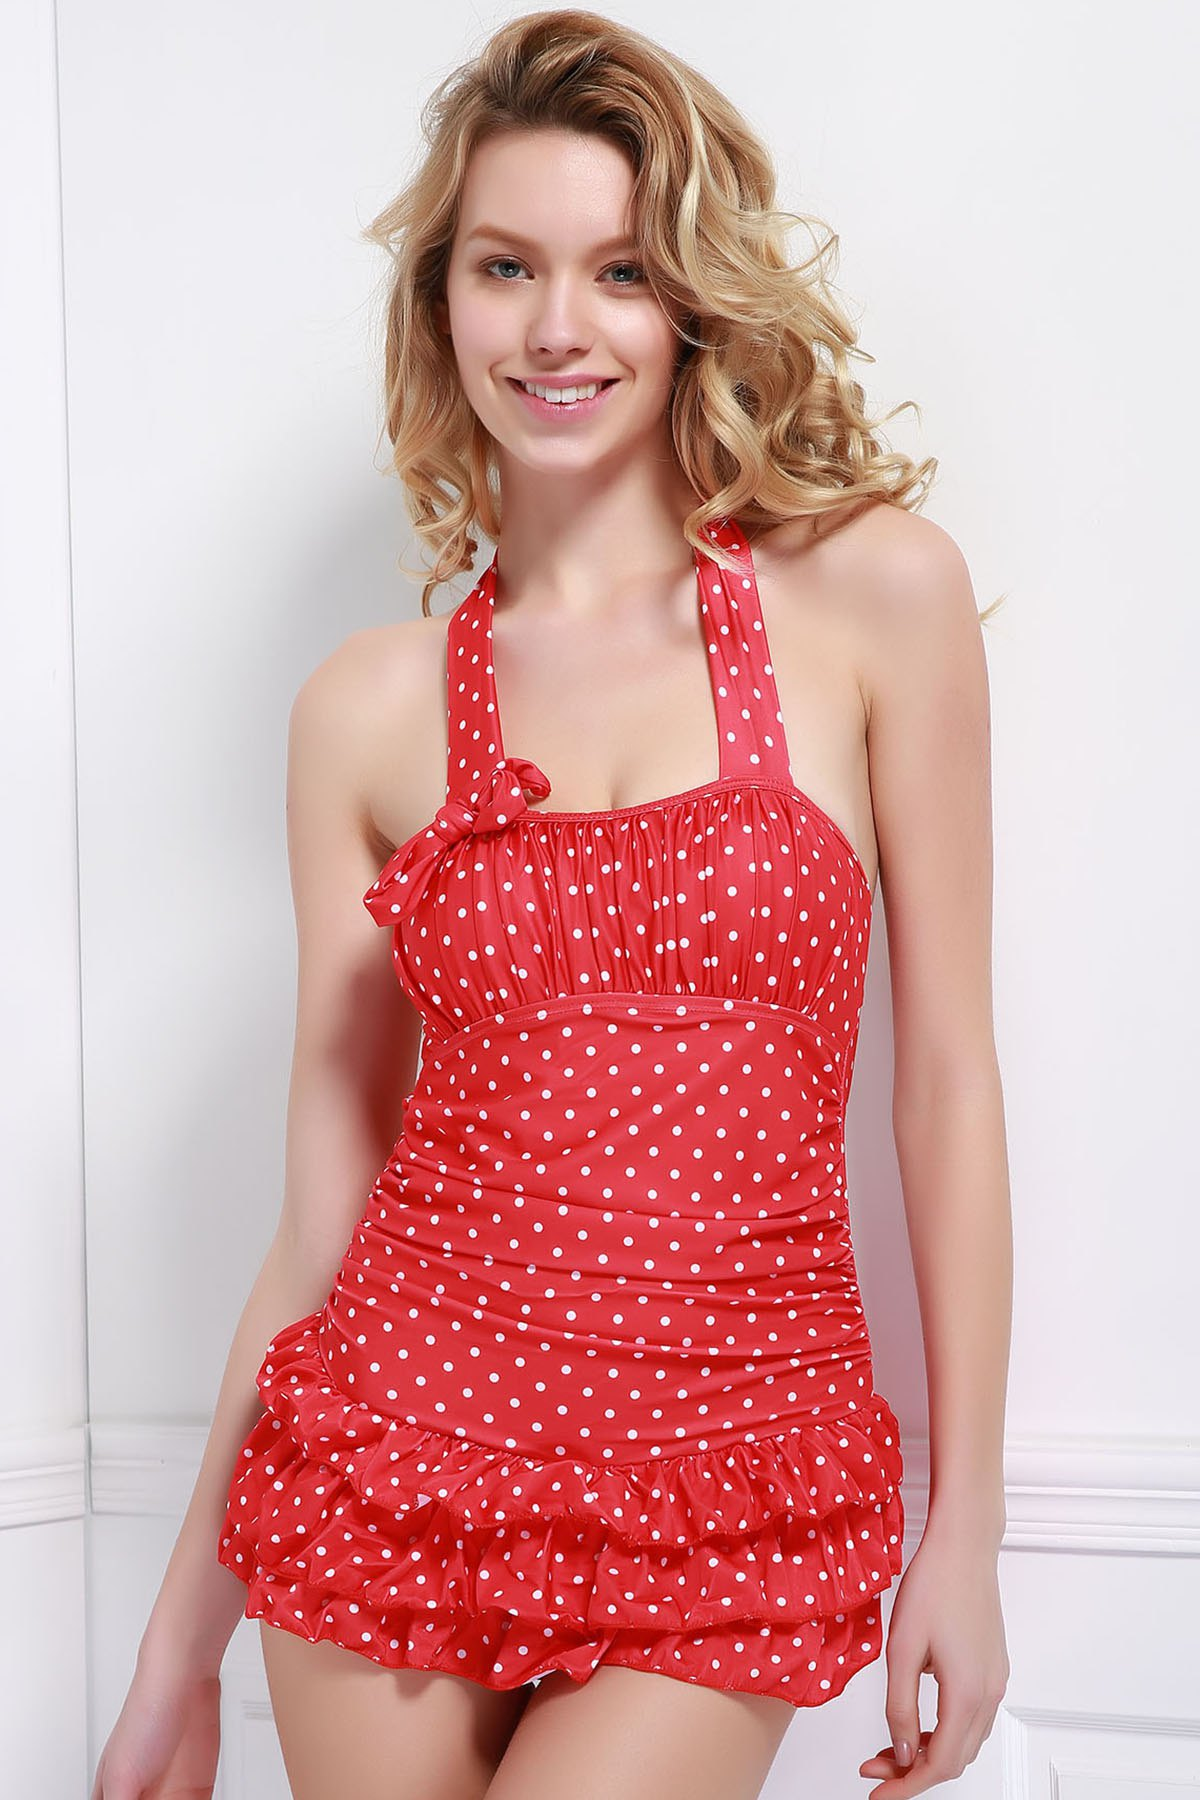 Women's Charming Multi-Layered Hollow Out Polka Dot Print One Piece Swimsuit - RED 2XL